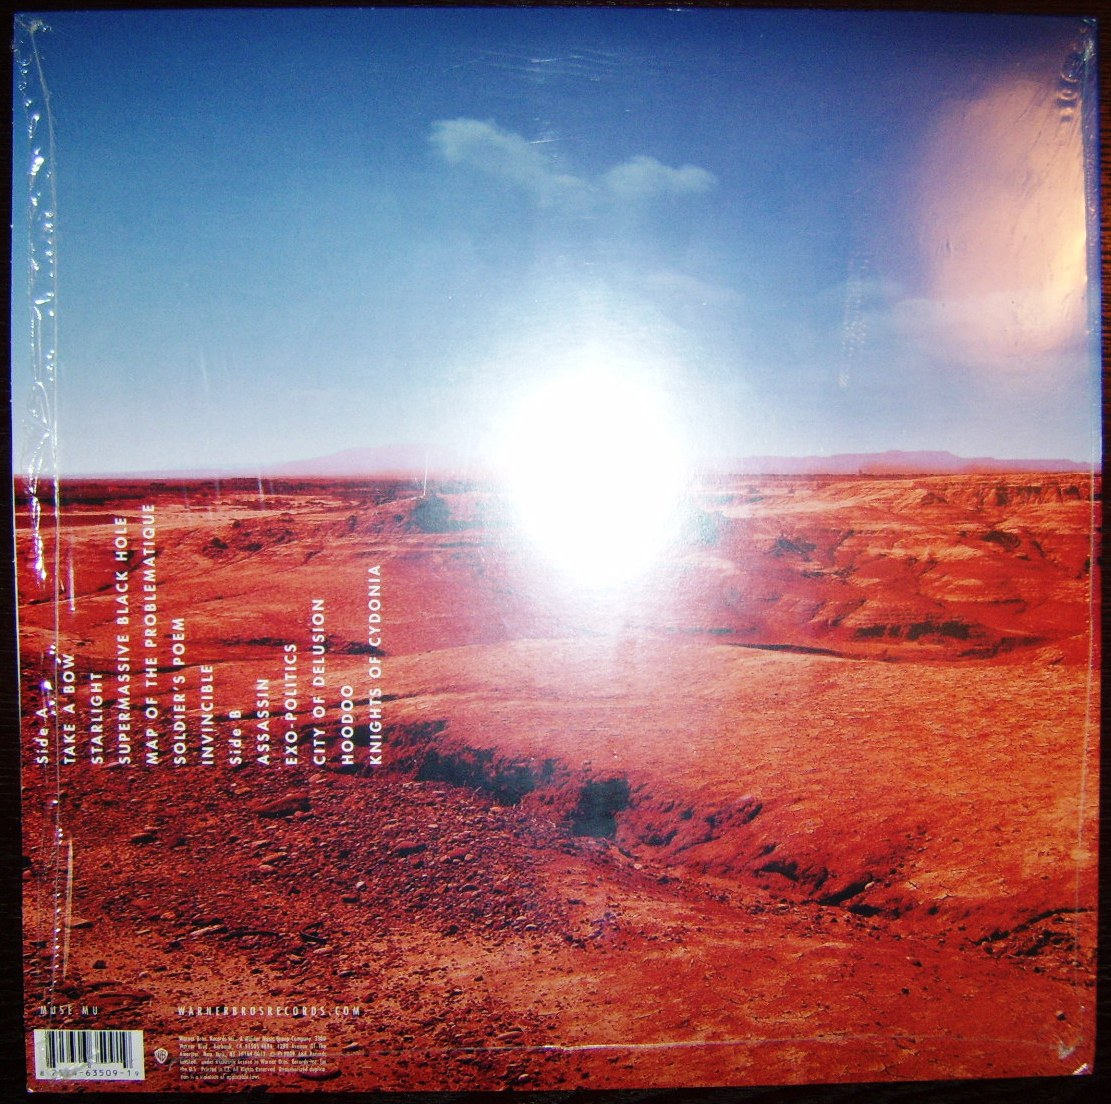 Lyrics to Starlight by Muse Our hopes and expectations Black holes and revelations Our hopes and expectations